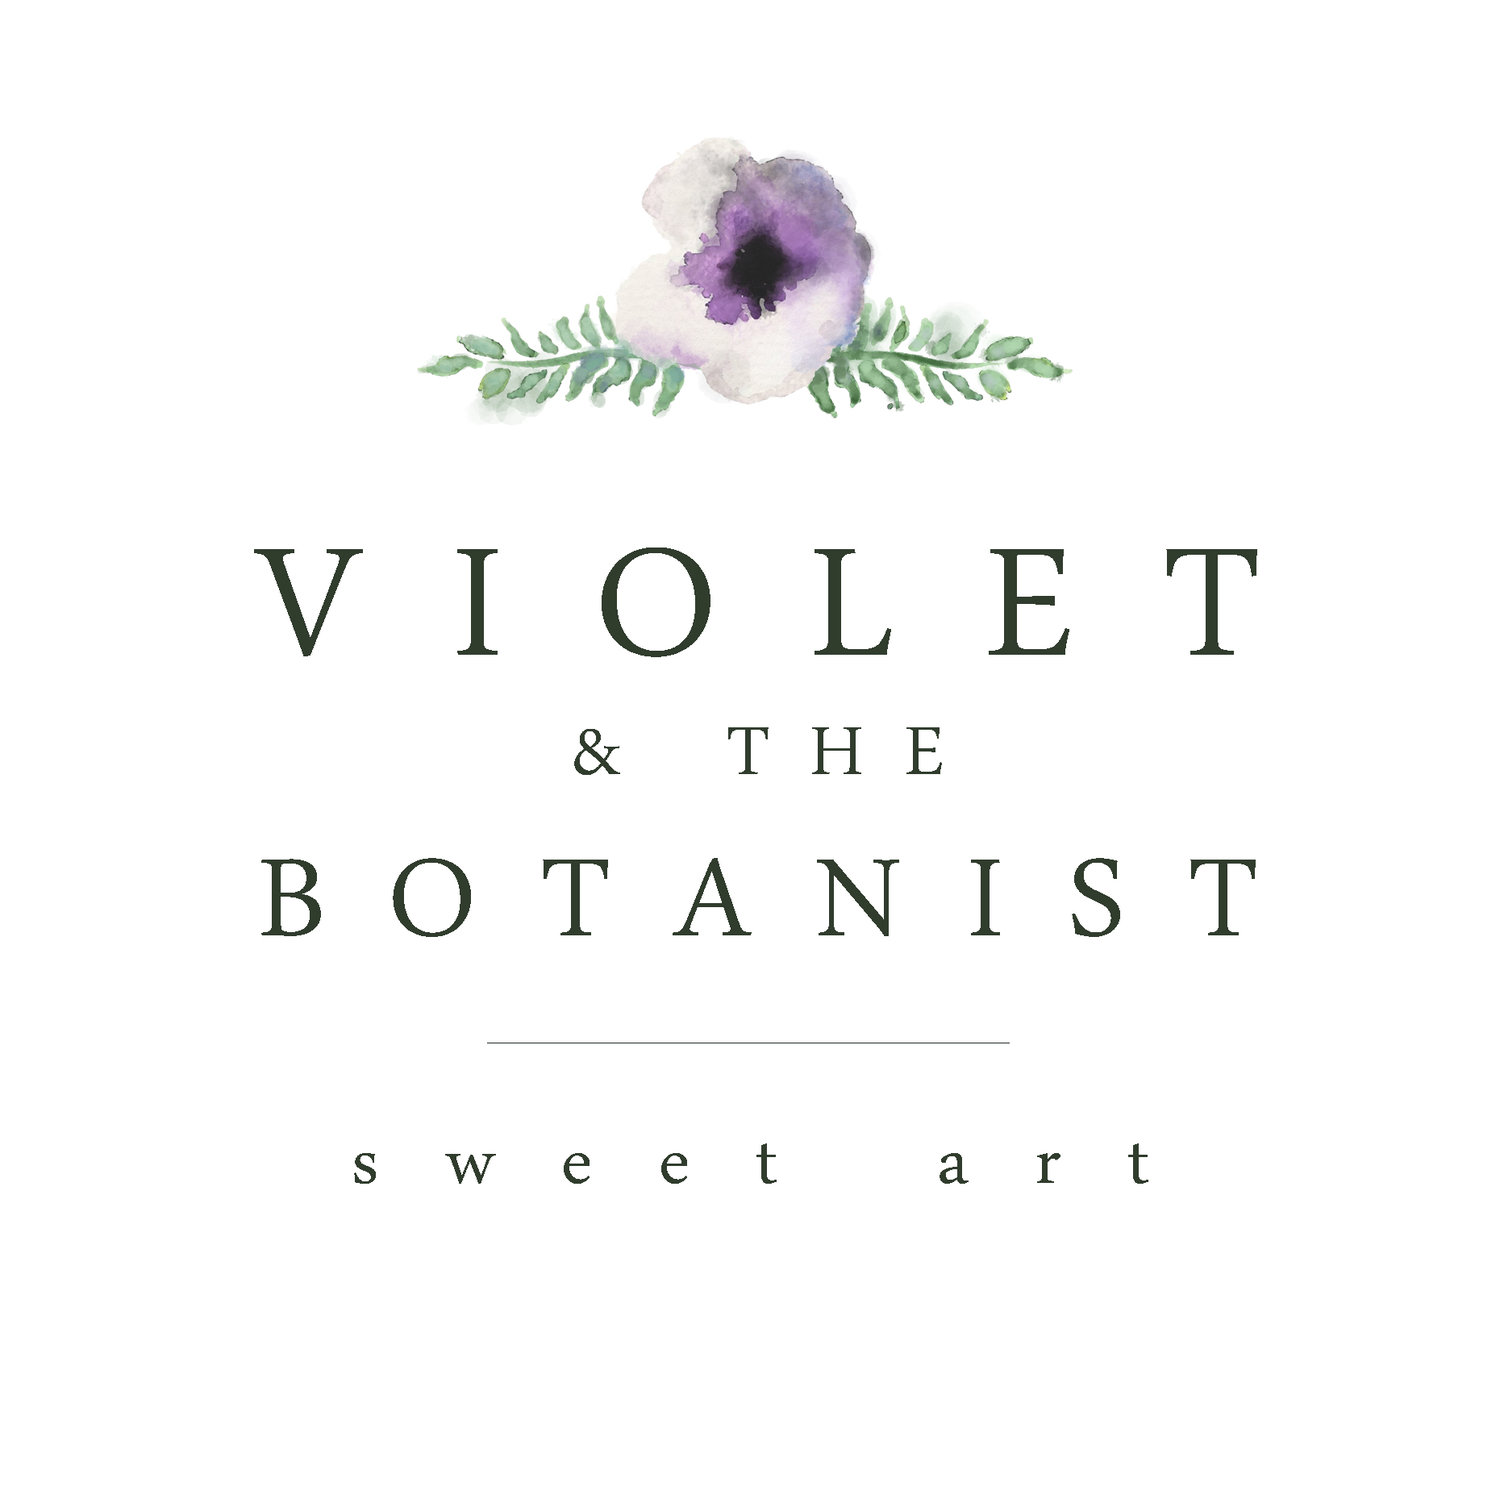 Violet and the botanist